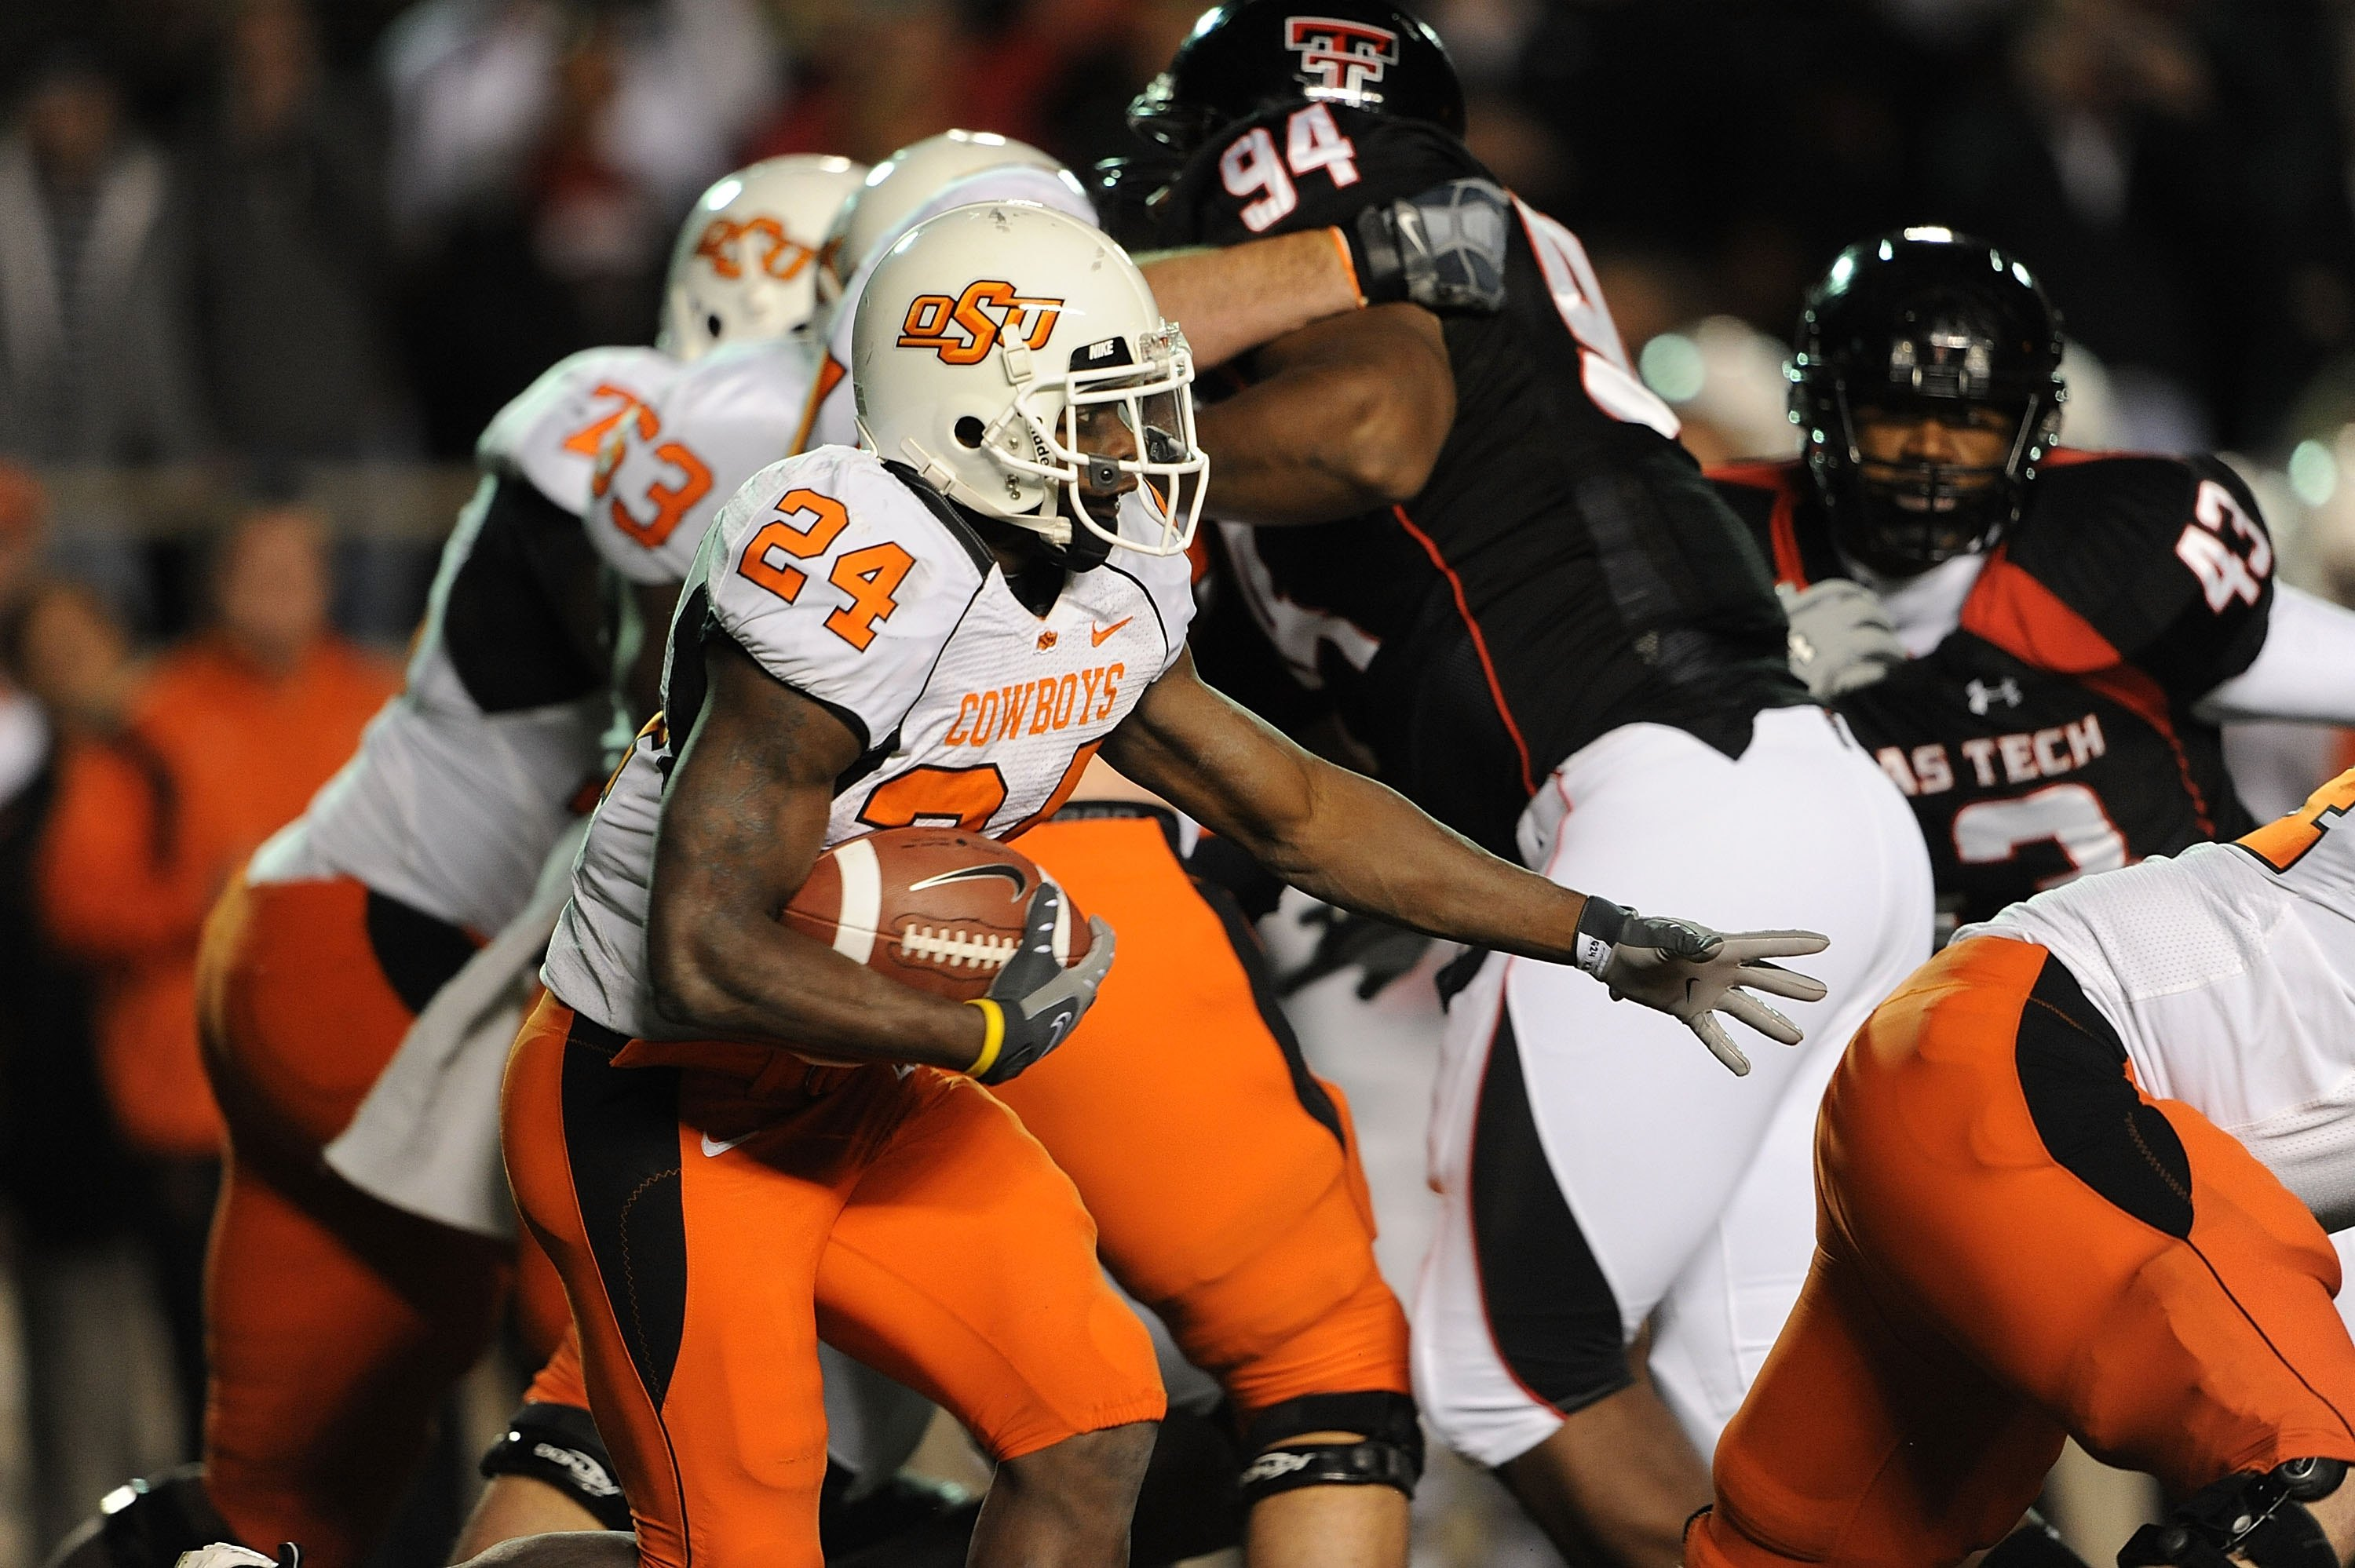 LUBBOCK, TX - NOVEMBER 08:  Running back Kendall Hunter #24 of the Oklahoma State Cowboys during play against the Texas Tech Red Raiders at Jones AT&T Stadium on November 8, 2008 in Lubbock, Texas.  (Photo by Ronald Martinez/Getty Images)